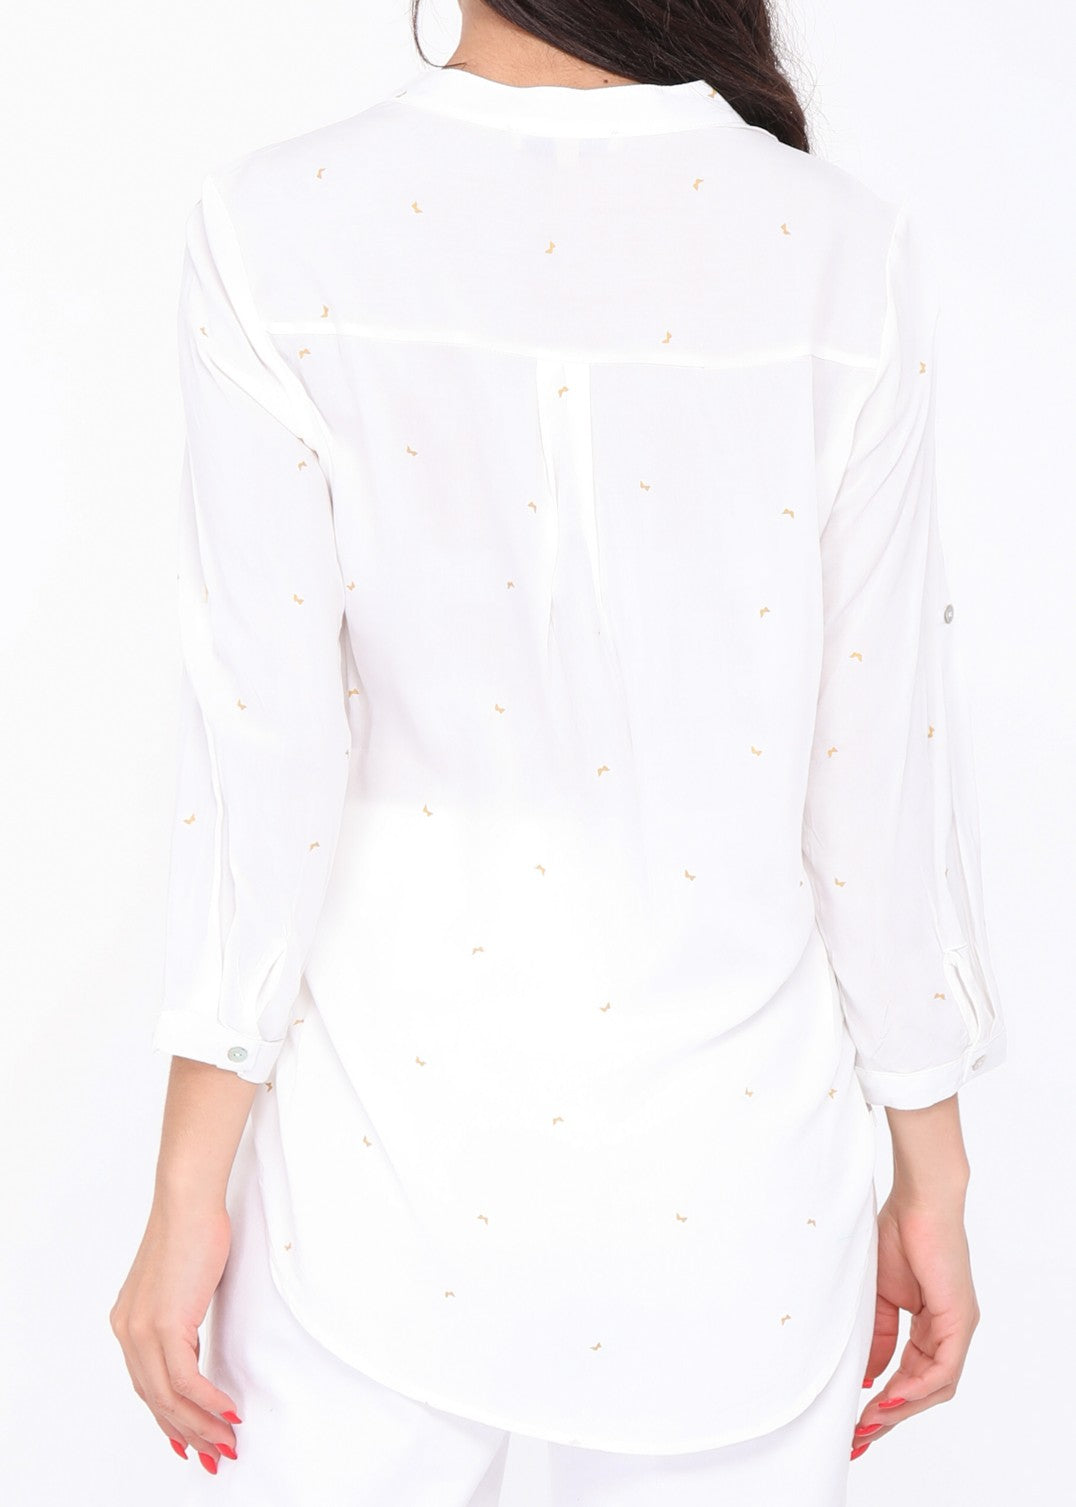 MARION - Butterfly Patterned Blouse - White